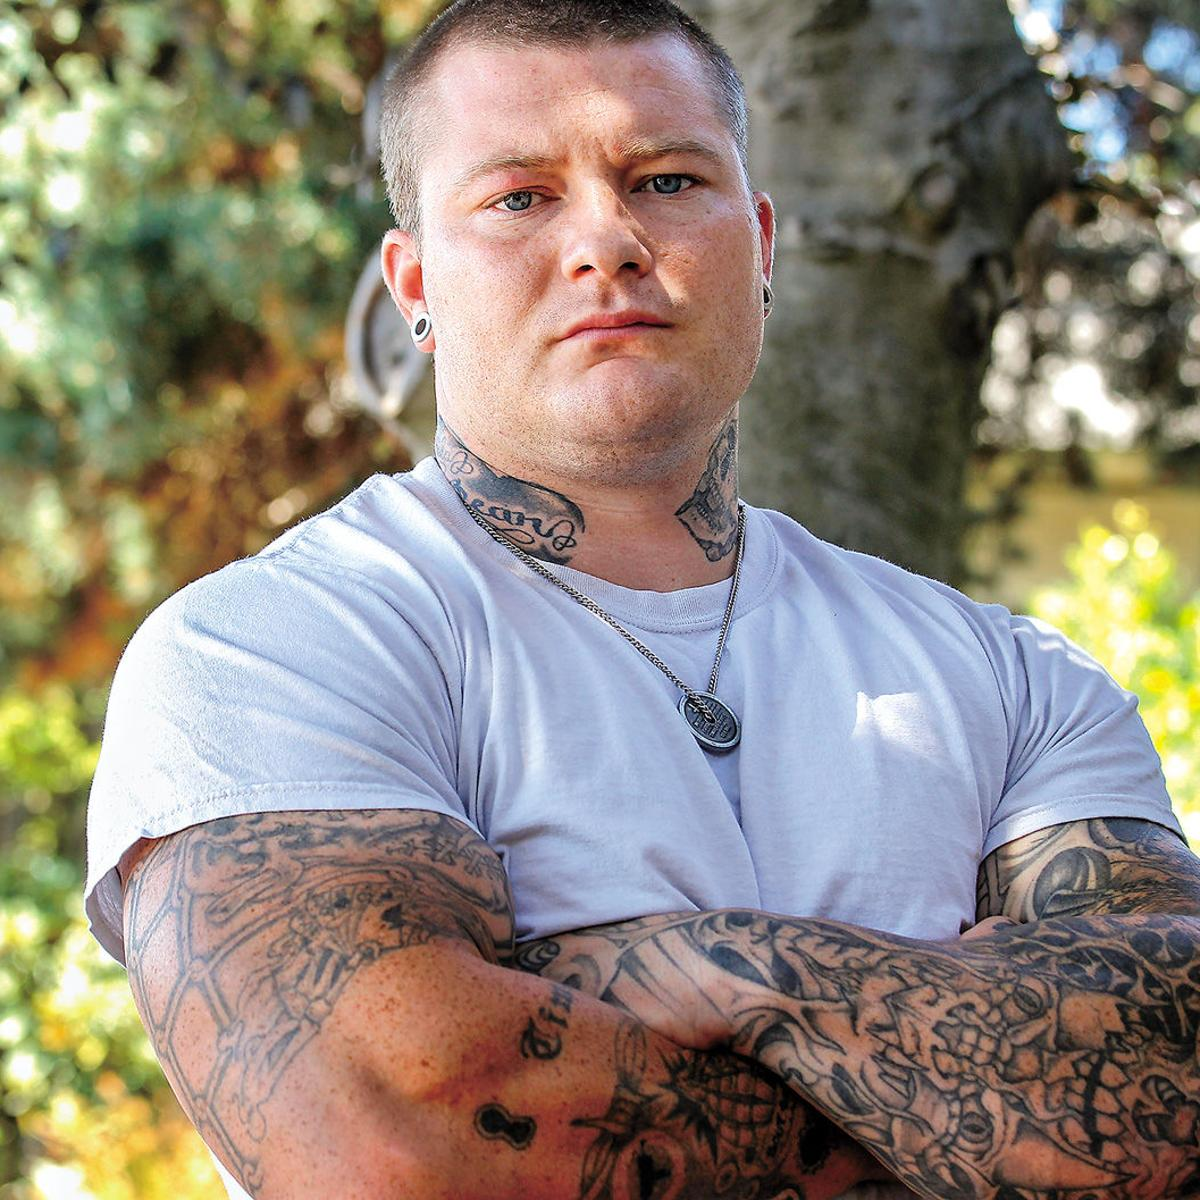 Longview Man Wins Claim For Back Wages From Gym Local Tdn Com